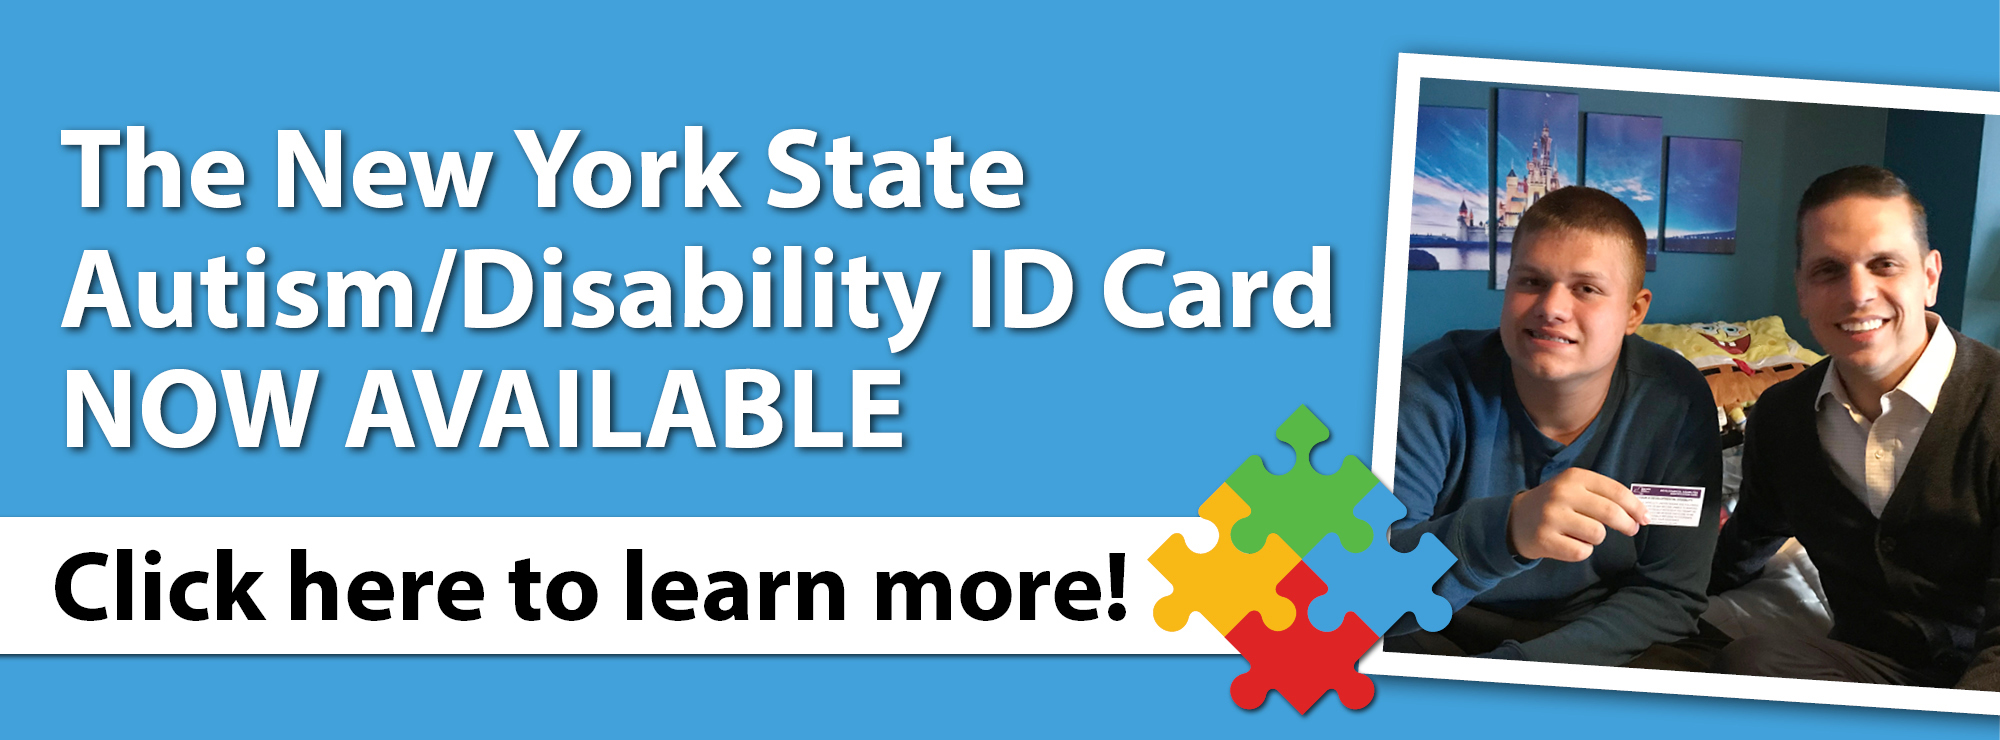 The New York State Autism/Disability ID Card